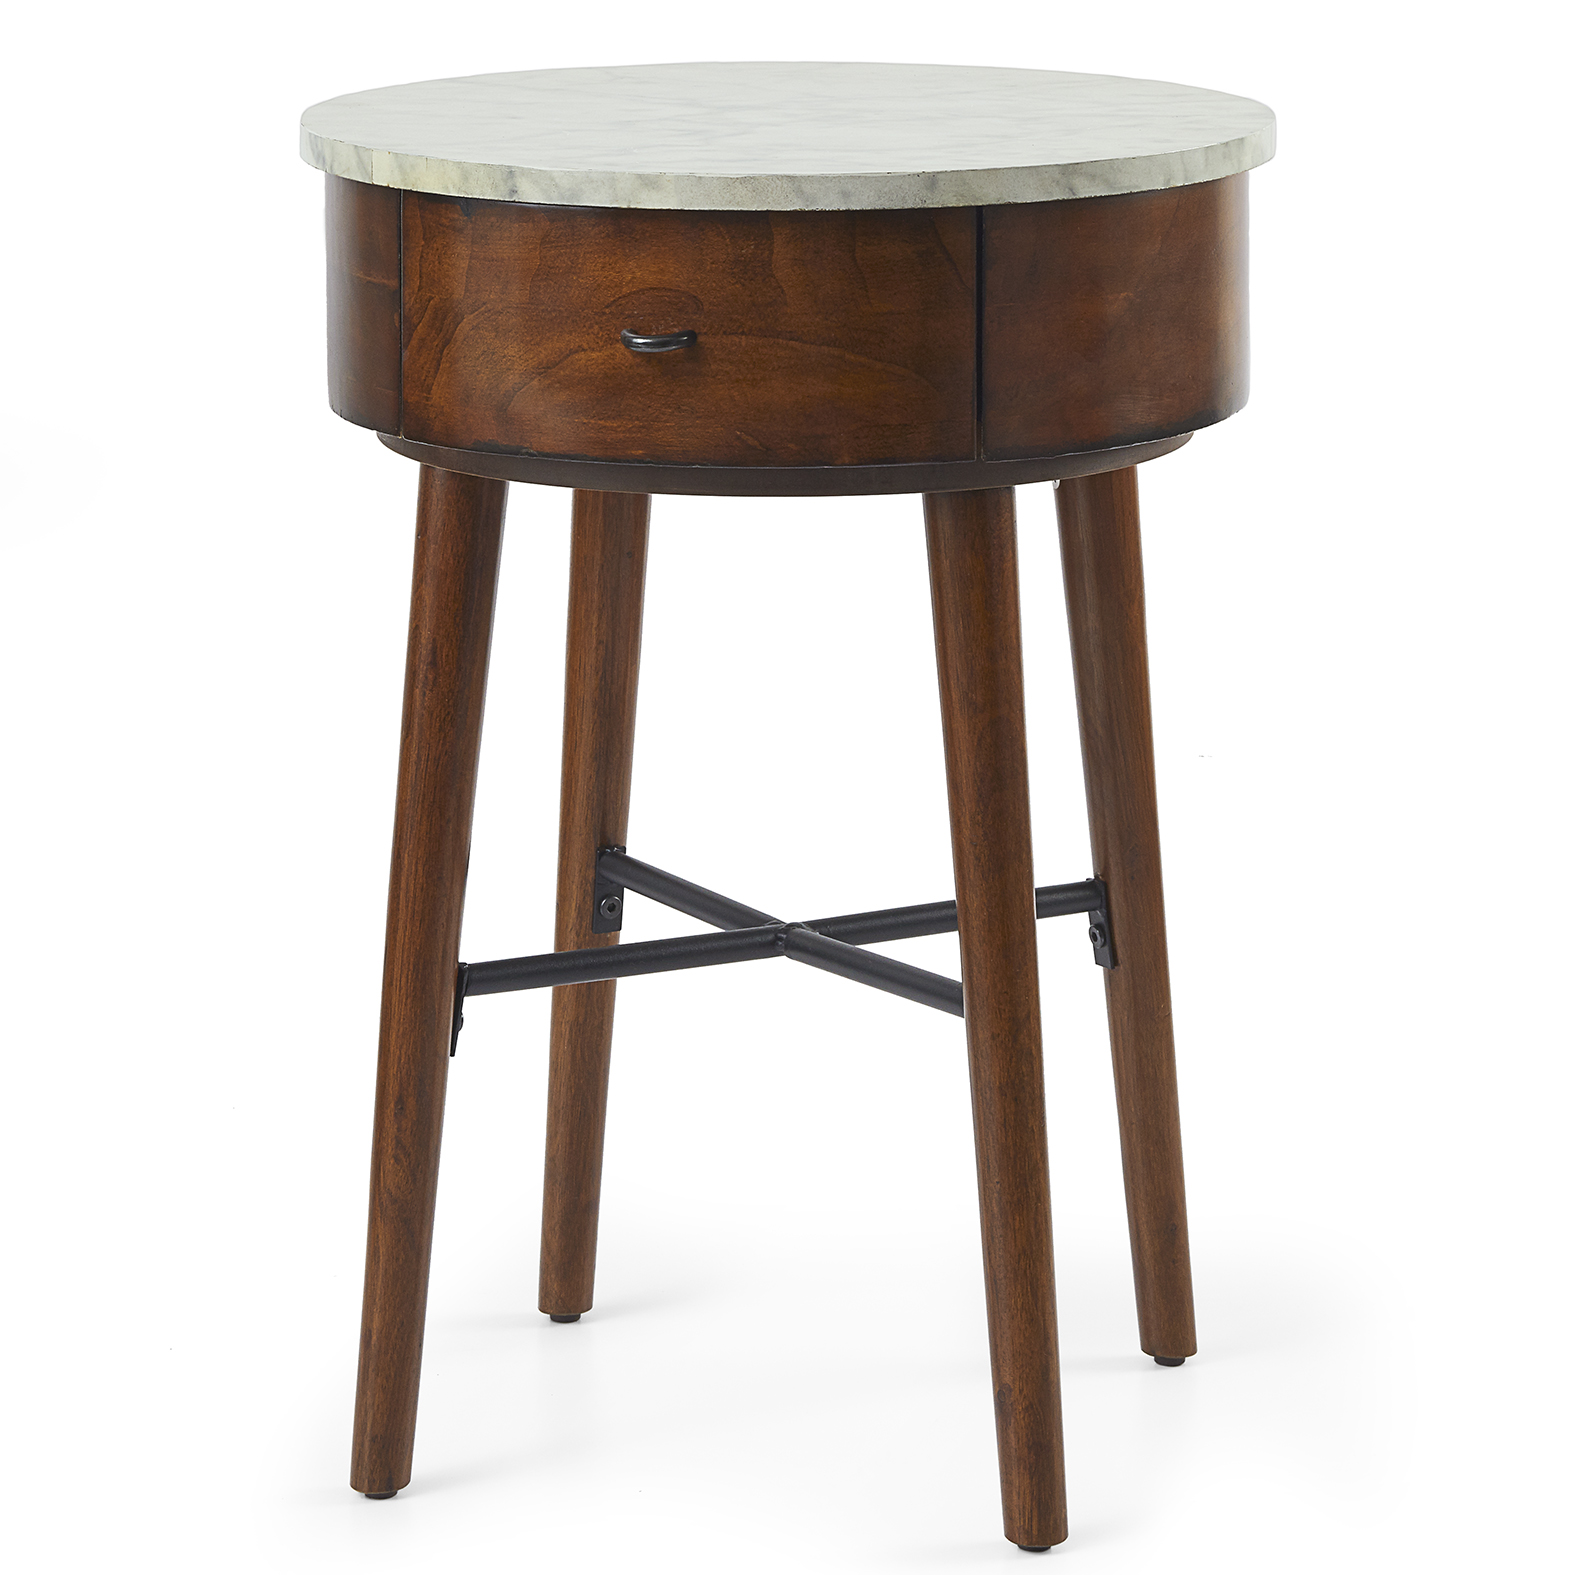 round accent end table faux marble top sofa chair side drawer vintage details safavieh couture white gloss console koncept lighting pier one ott contemporary dining room nautical